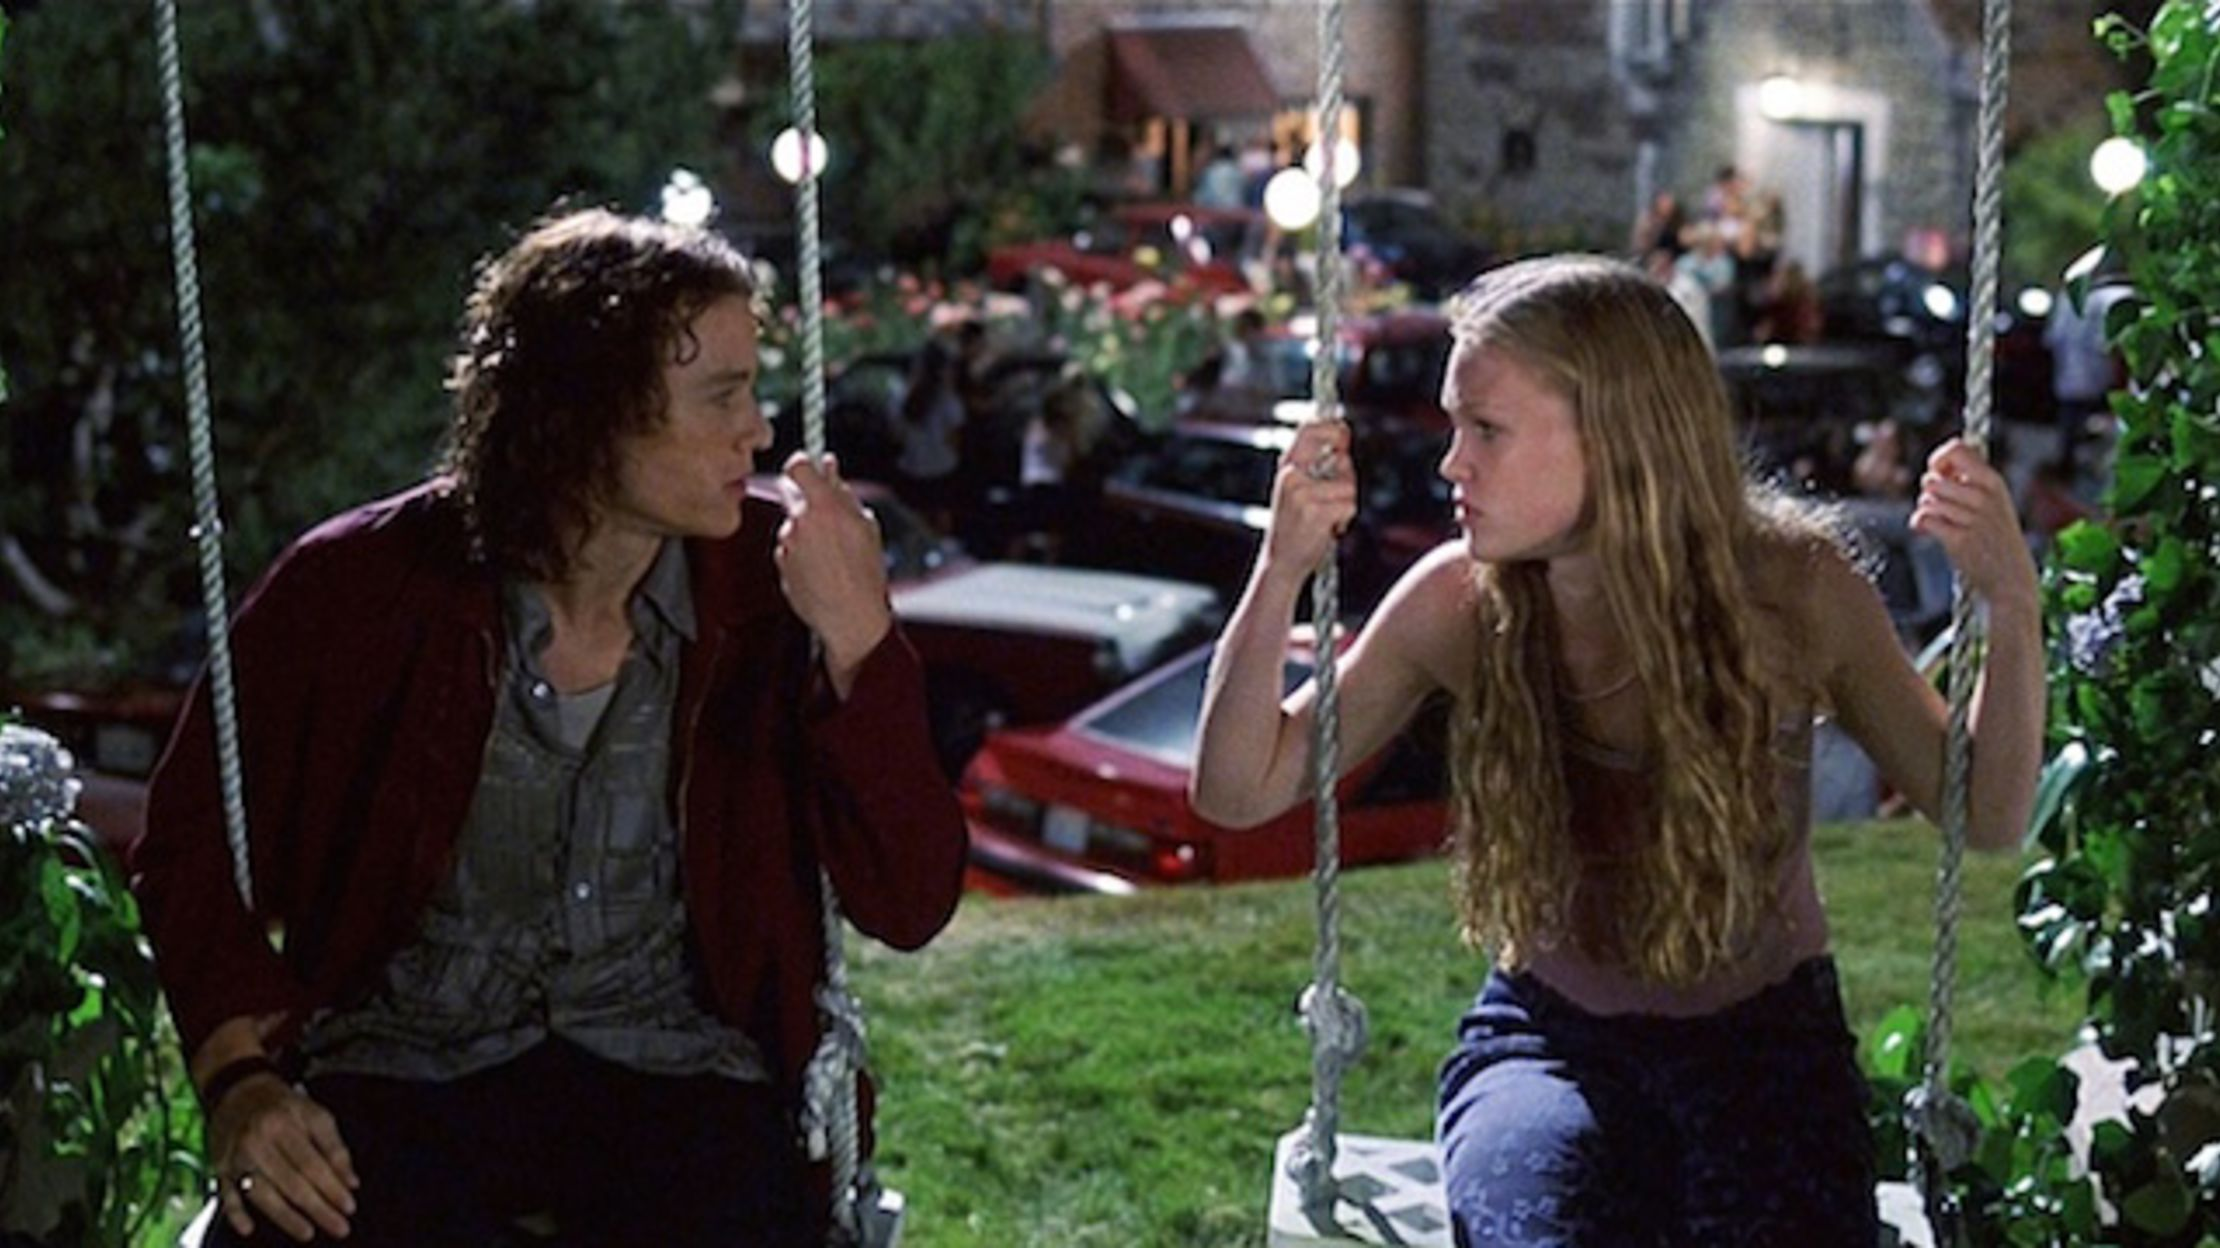 10 things i hate about you films set in school